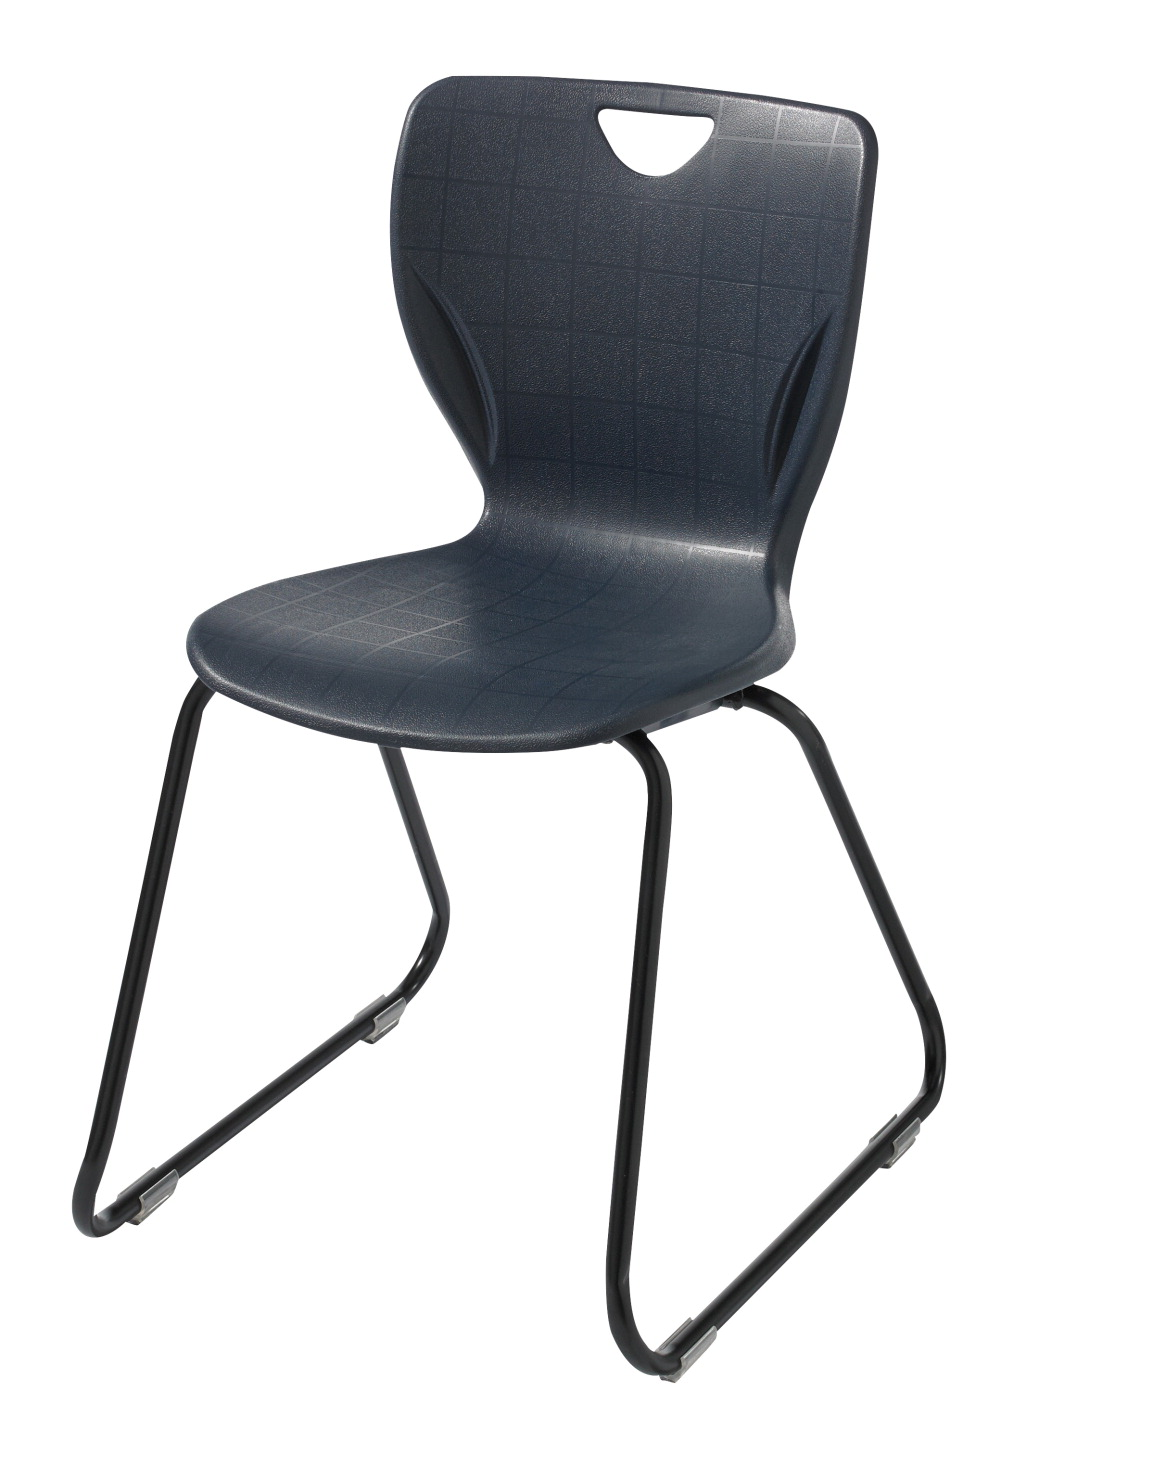 classroom select contemporary sled base chair felt glides 18 in seat